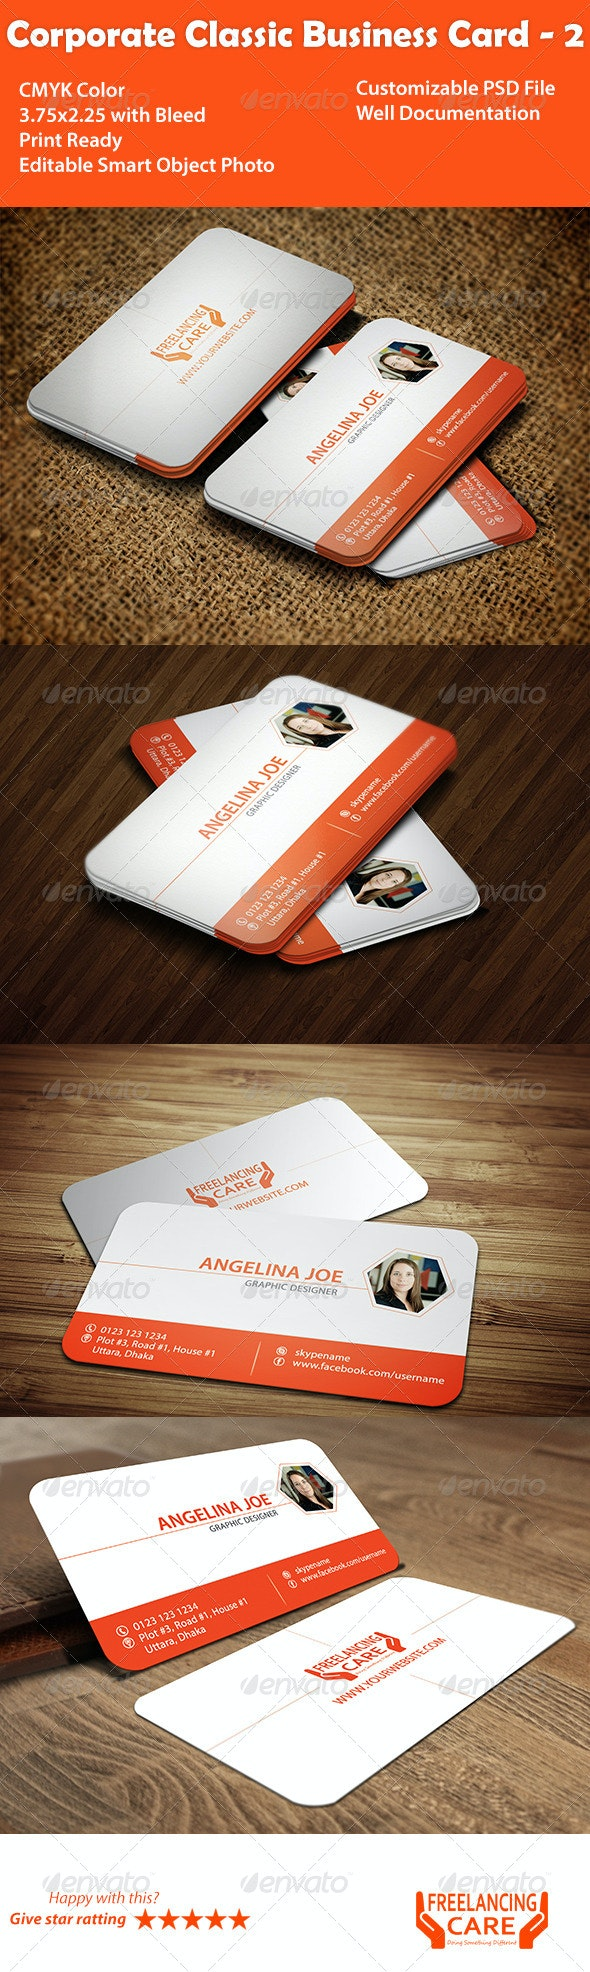 Corporate Classic Business Card - Vol 2 - Corporate Business Cards